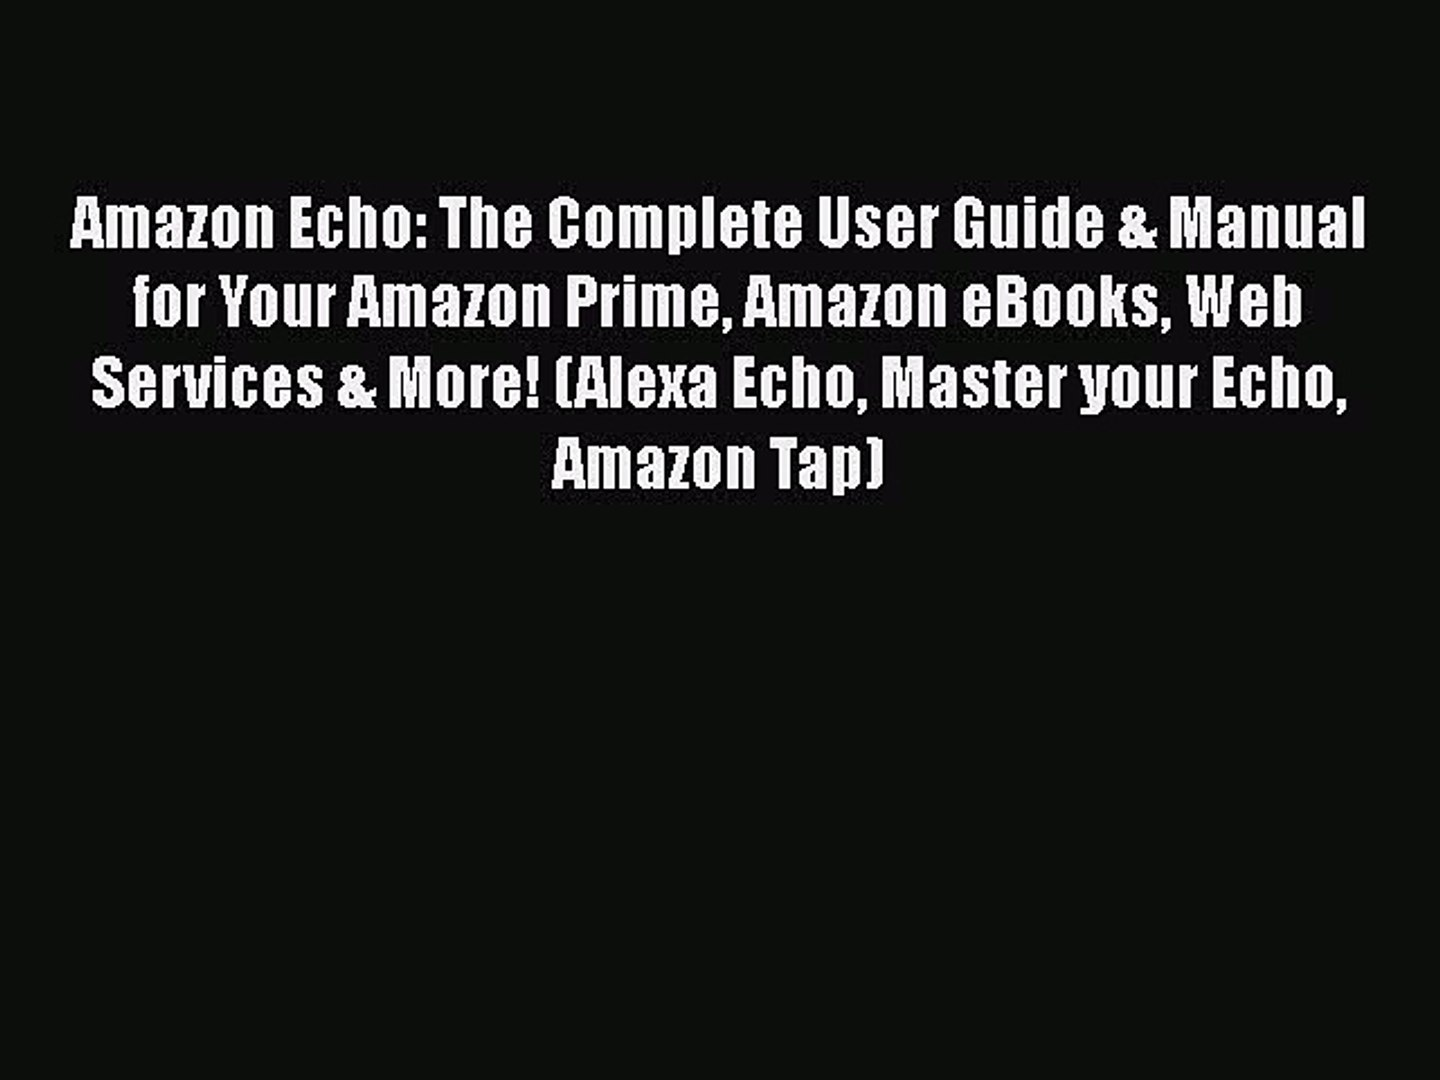 [Read Book] Amazon Echo: The Complete User Guide & Manual for Your Amazon Prime Amazon eBooks